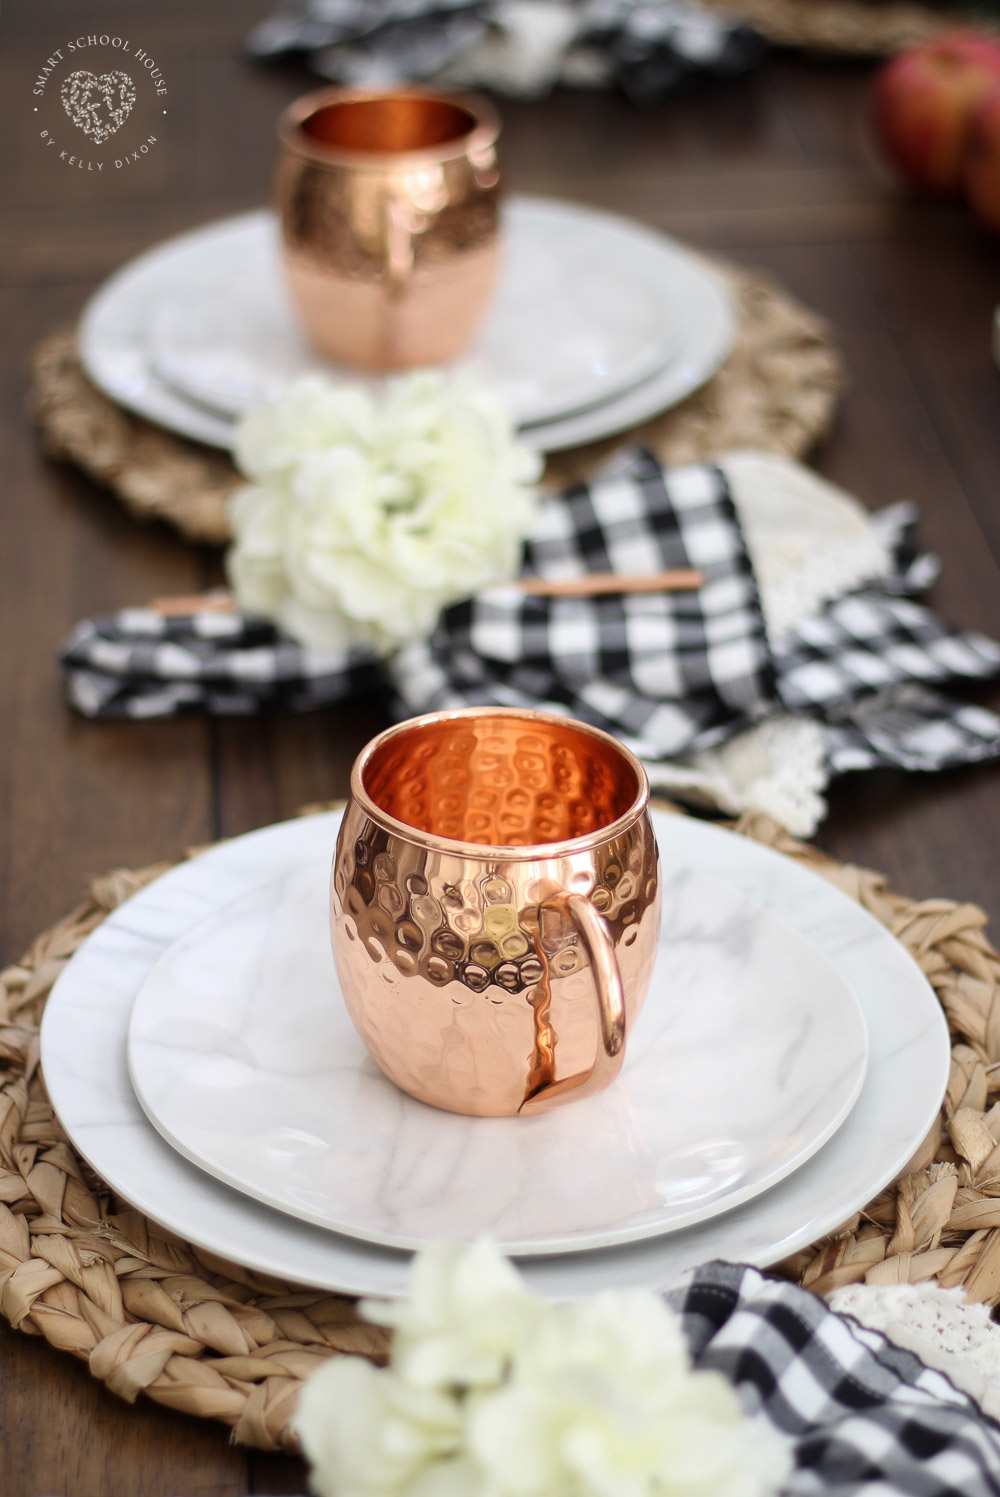 Fall tablescape idea. DIY fall table decor. Moscow mule mugs. Marble plates. Buffalo check napkin with floral napkin rings. #falldecor #falltablescape #homedecor